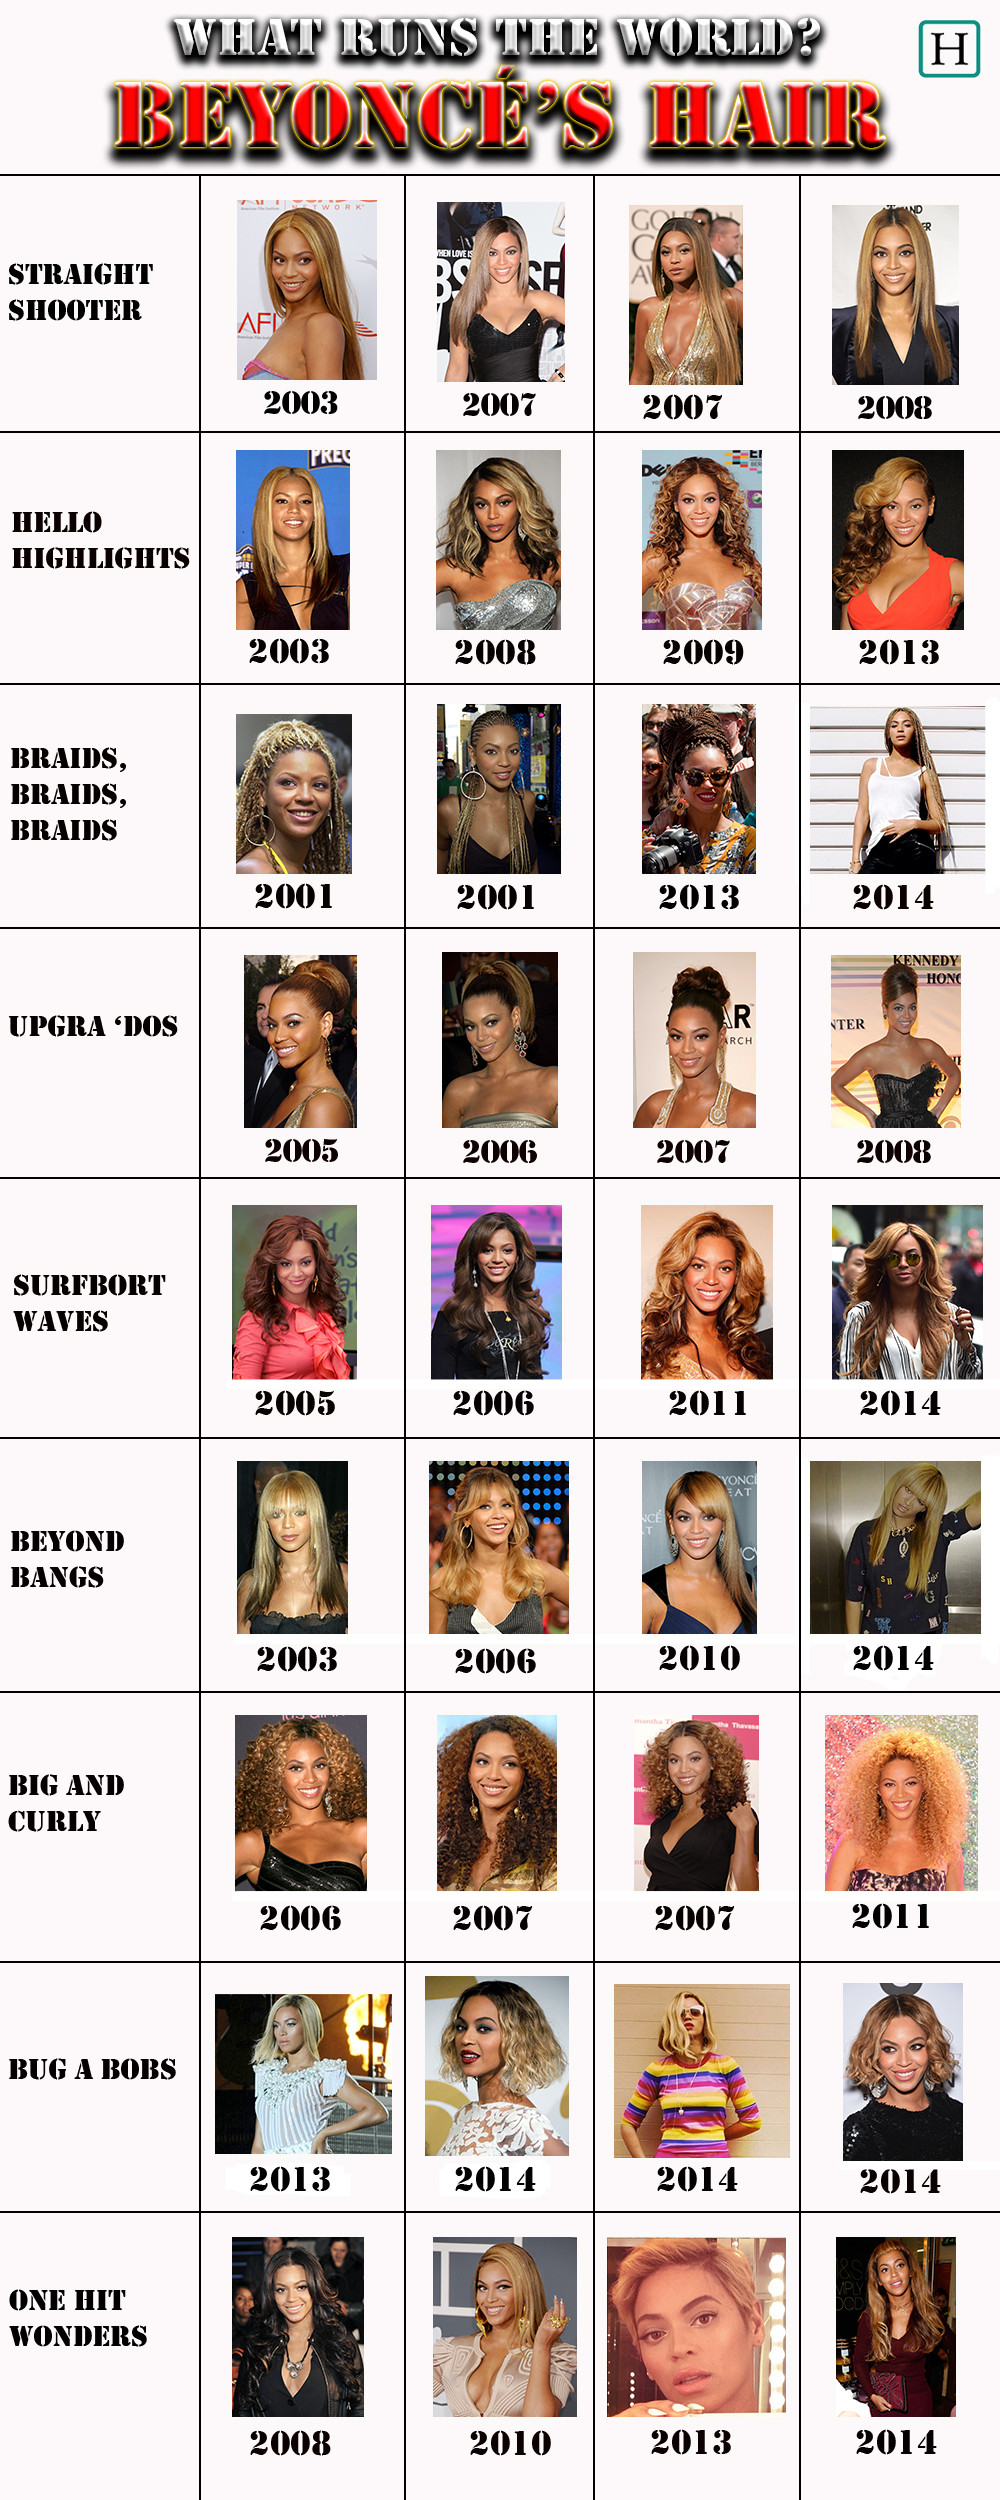 Beyoncé\'s Hairstyles Are What Really Run The World | HuffPost